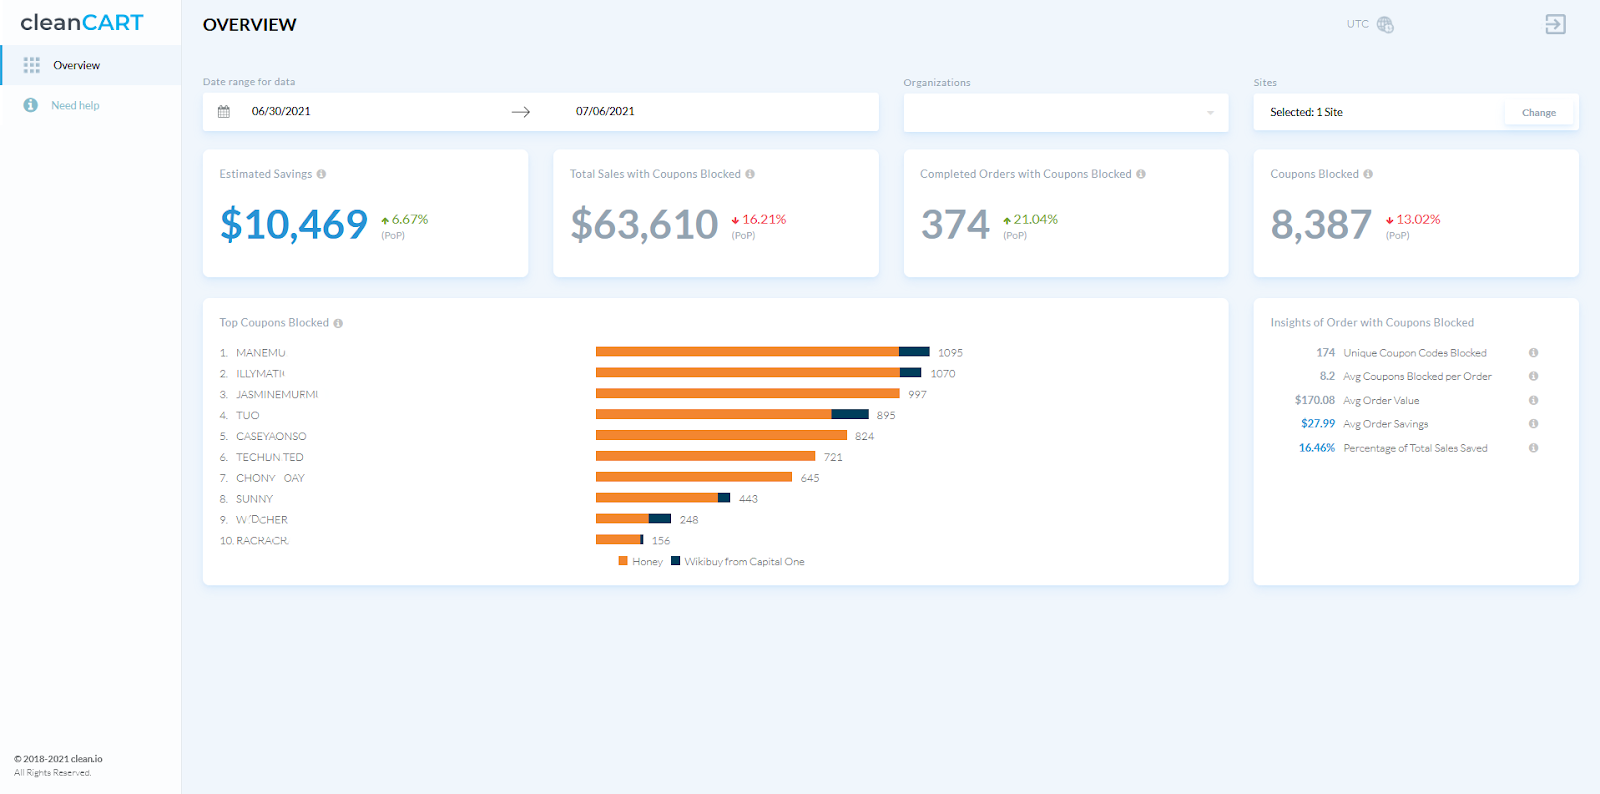 cleancart dashboard overview